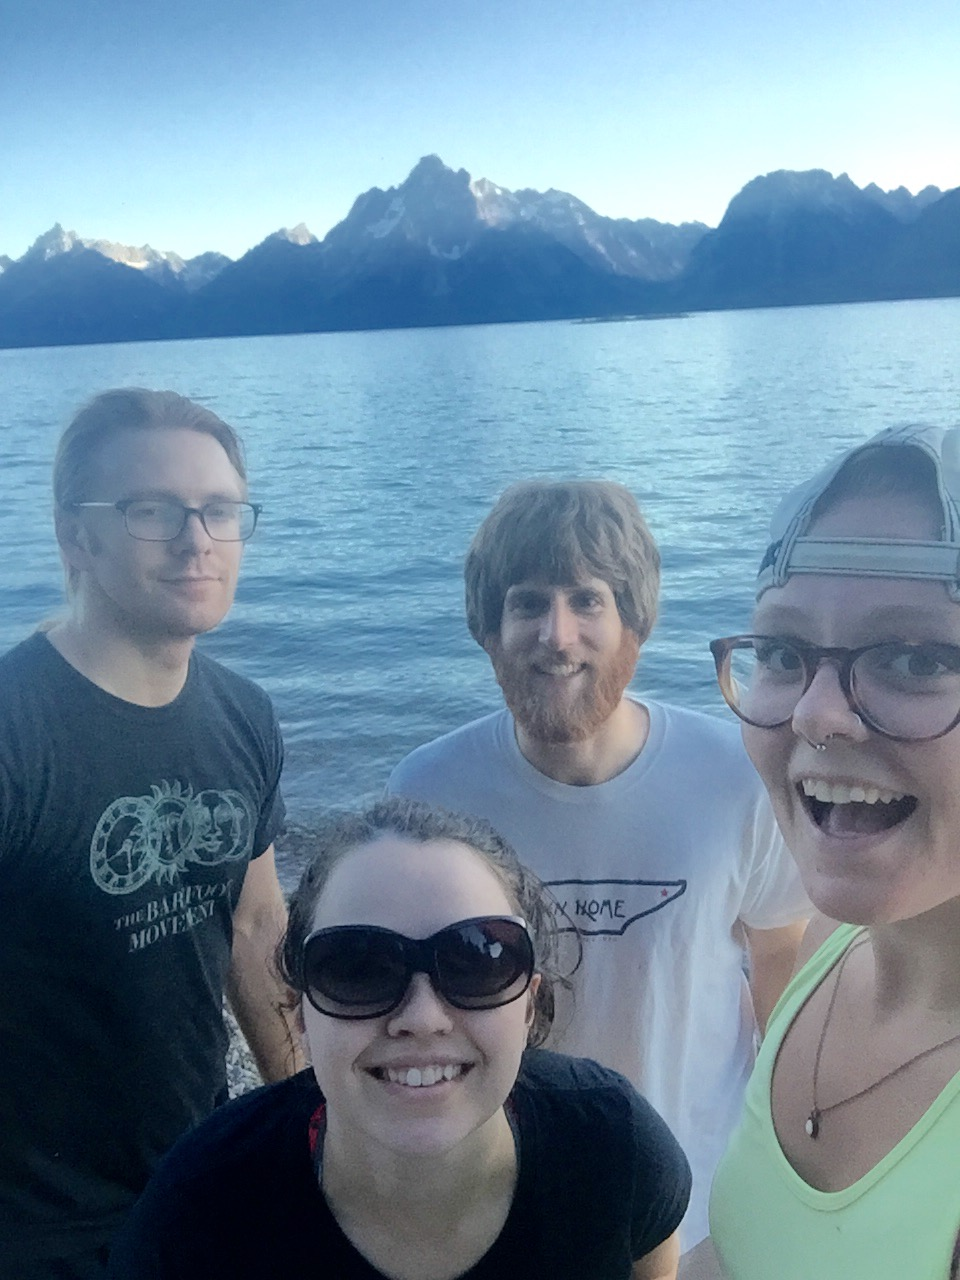 The Grand Tetons on our day off!